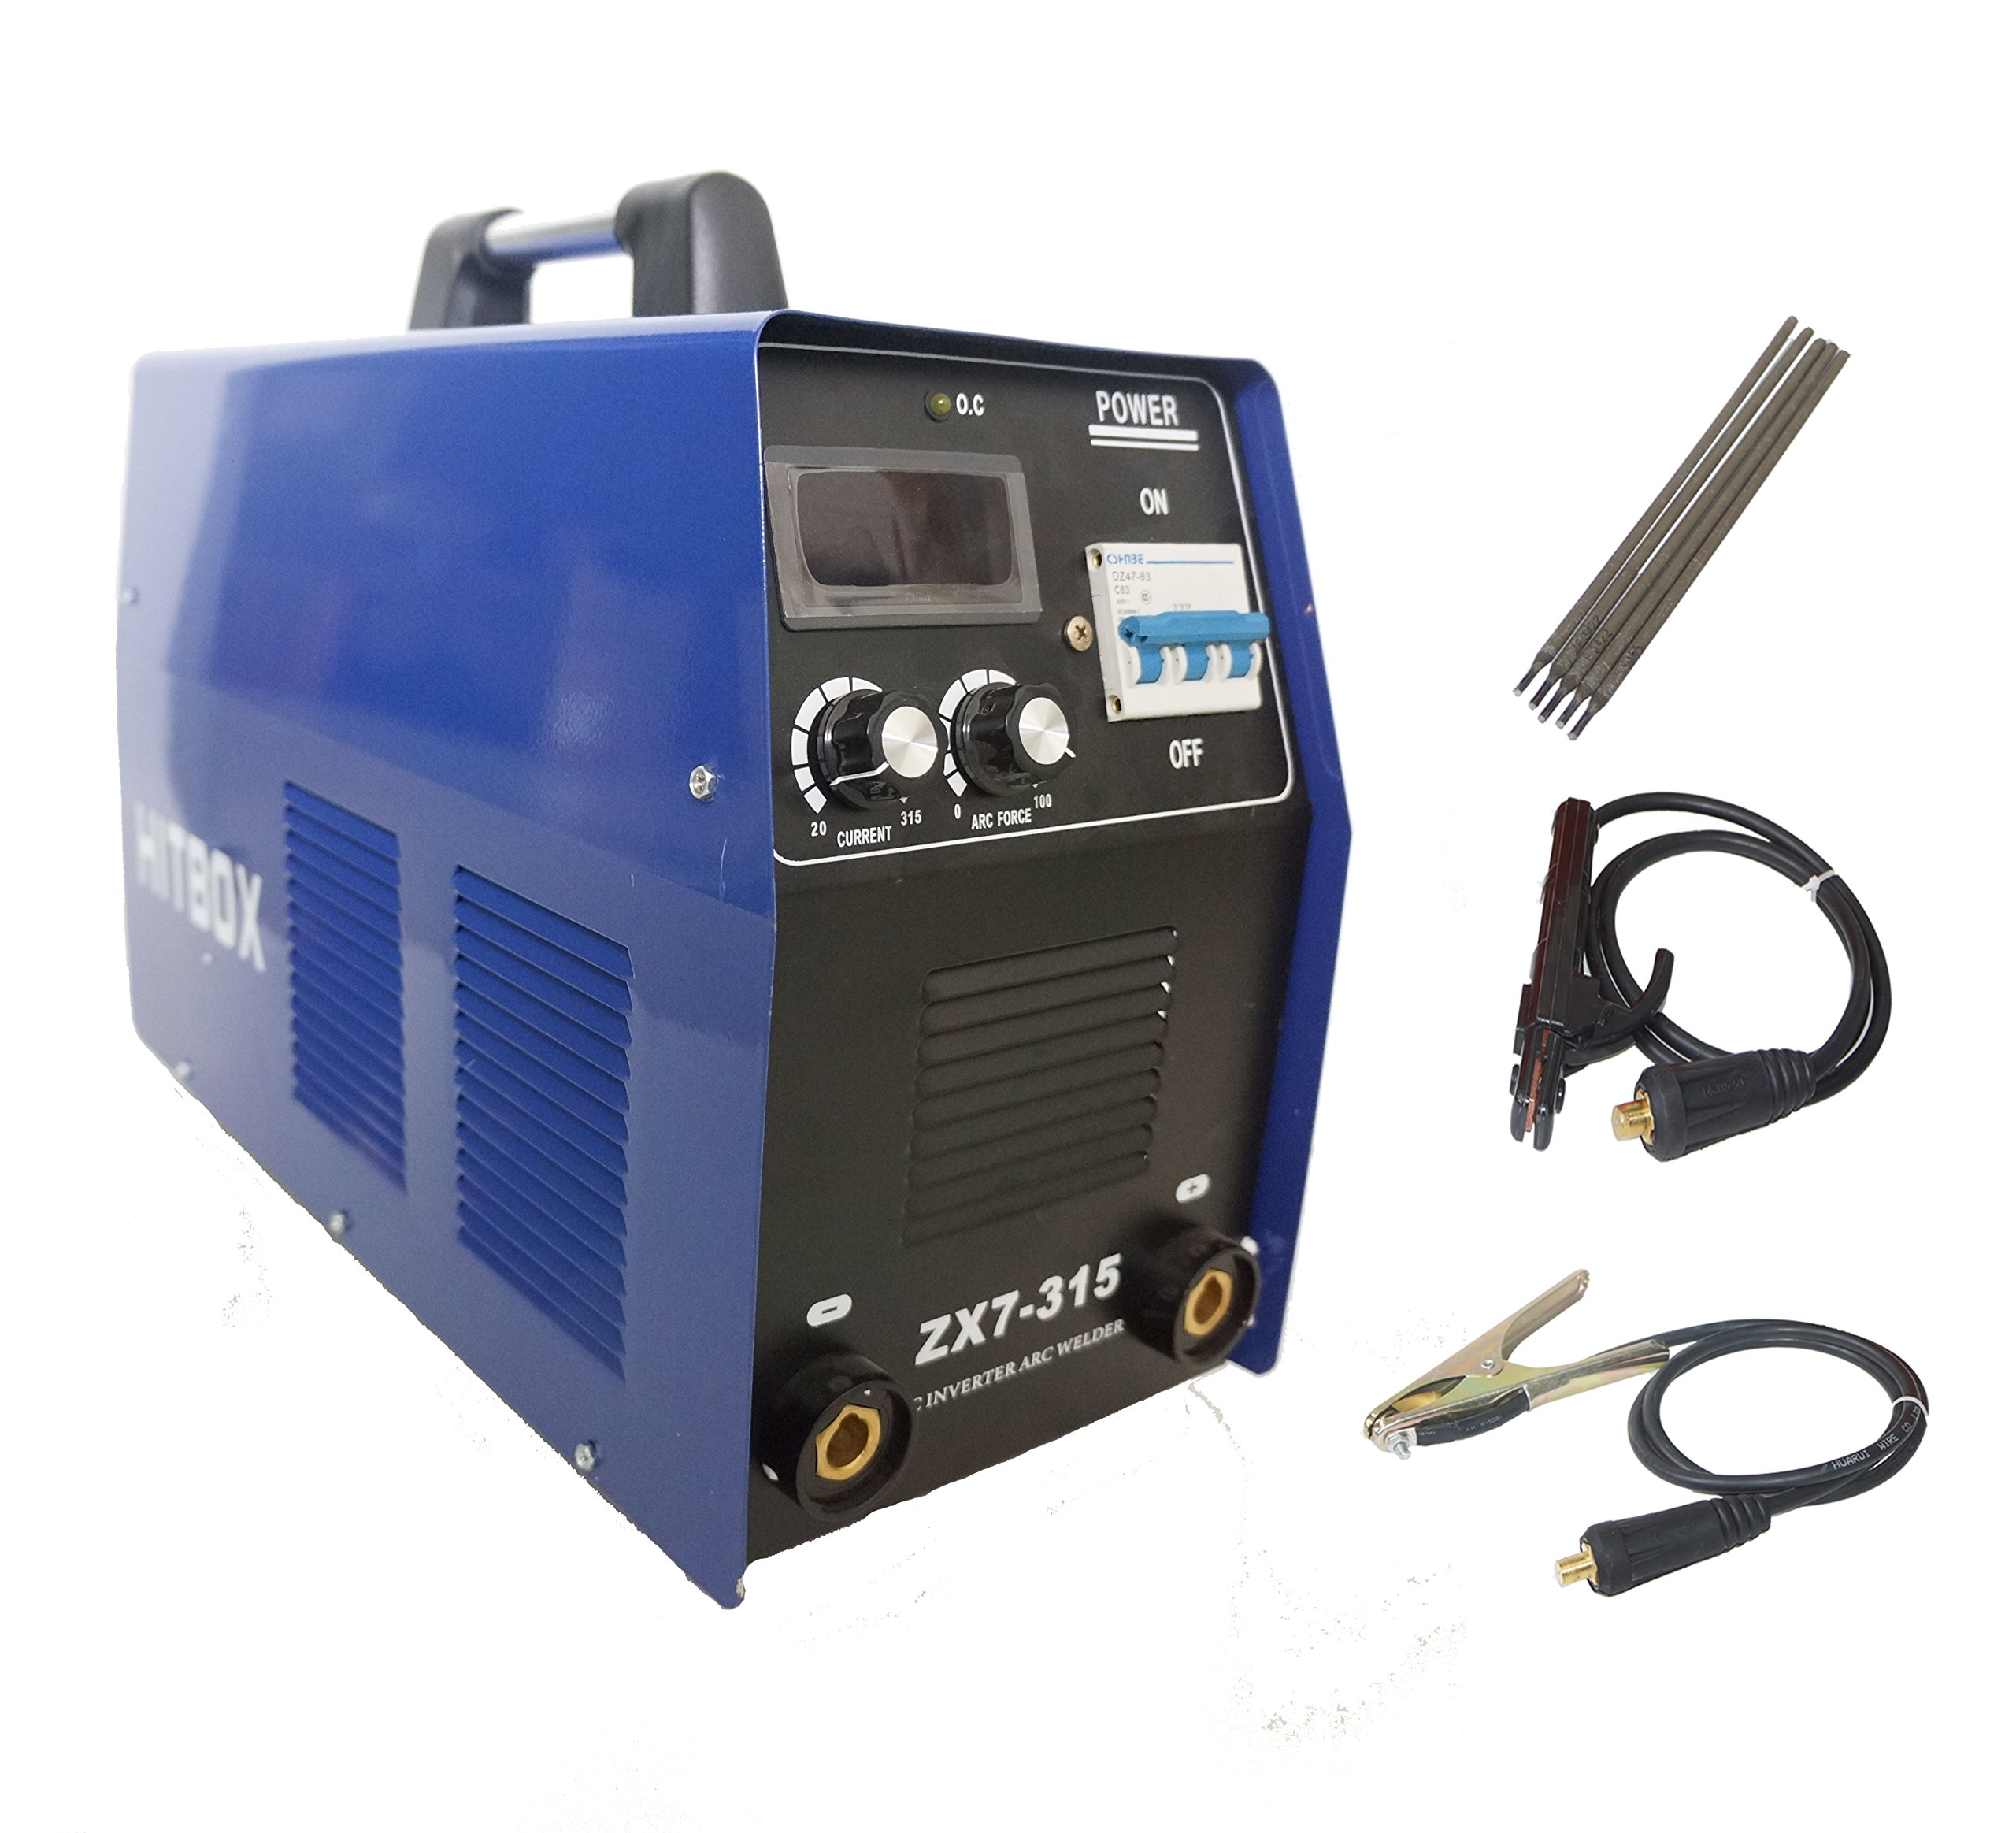 ARC Welding Machine ZX7-315 Stick Welder Actual Current 250Amp 3 phase 380V DC Inverter Welding Machine Good Heatsink 60% Duty Cycle Industrial Use MMA Welder by HITBOX